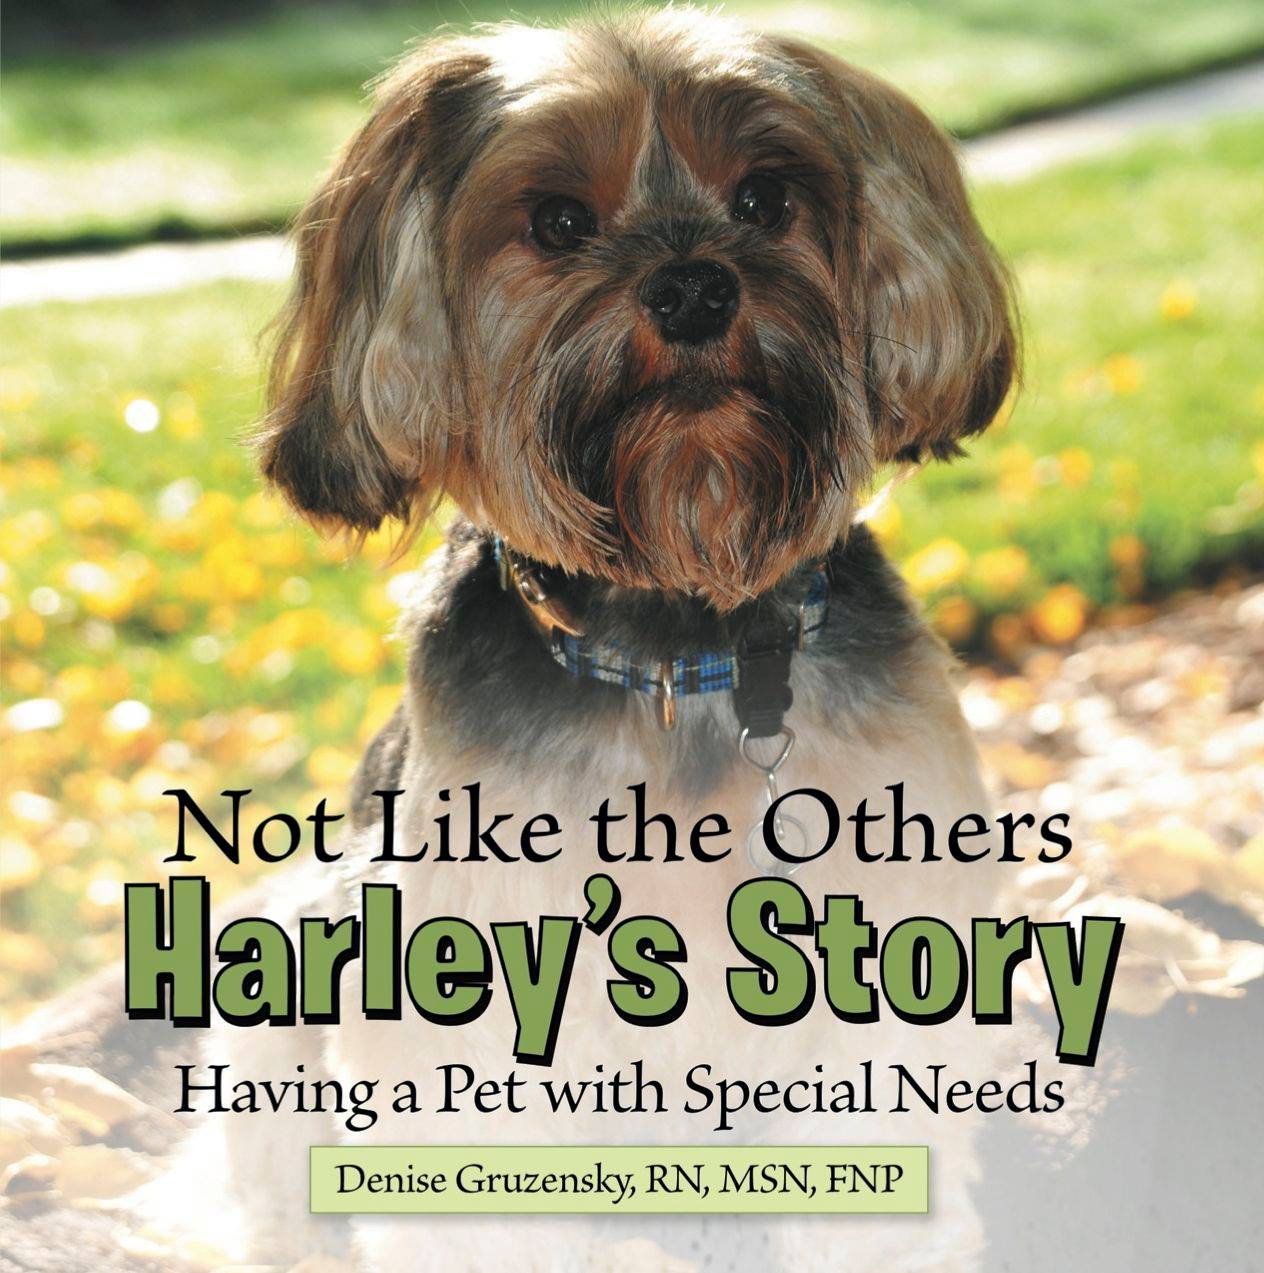 Not Like the Others-Harley's Story